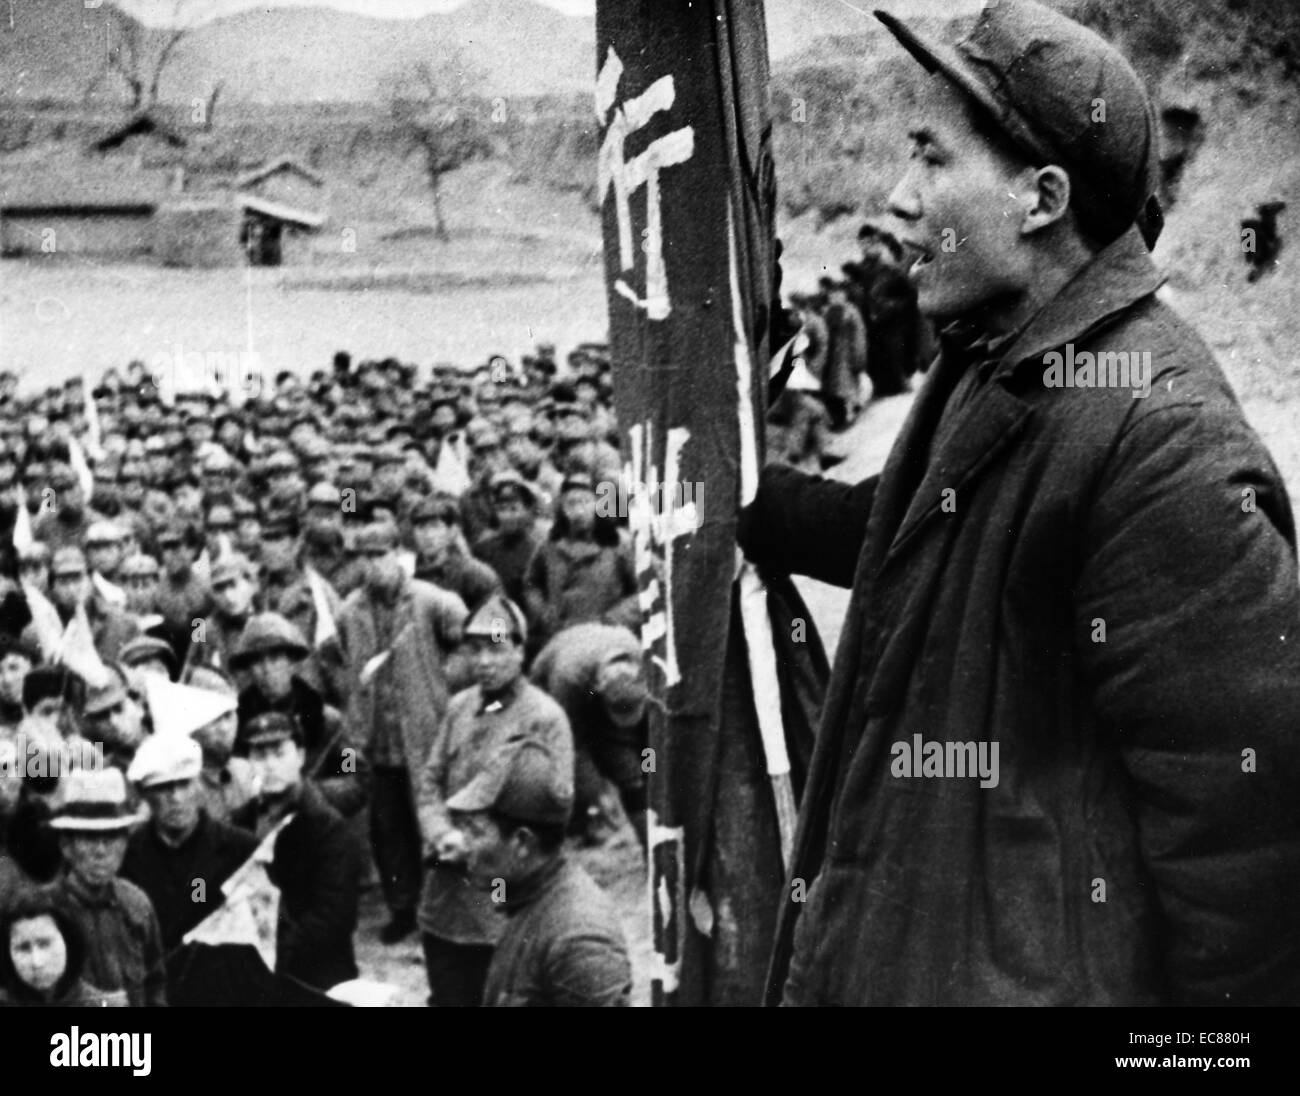 Photograph of Mao Tse Tung, leader of China's Communists, addresses followers during the Long March. Dated 1937 - Stock Image